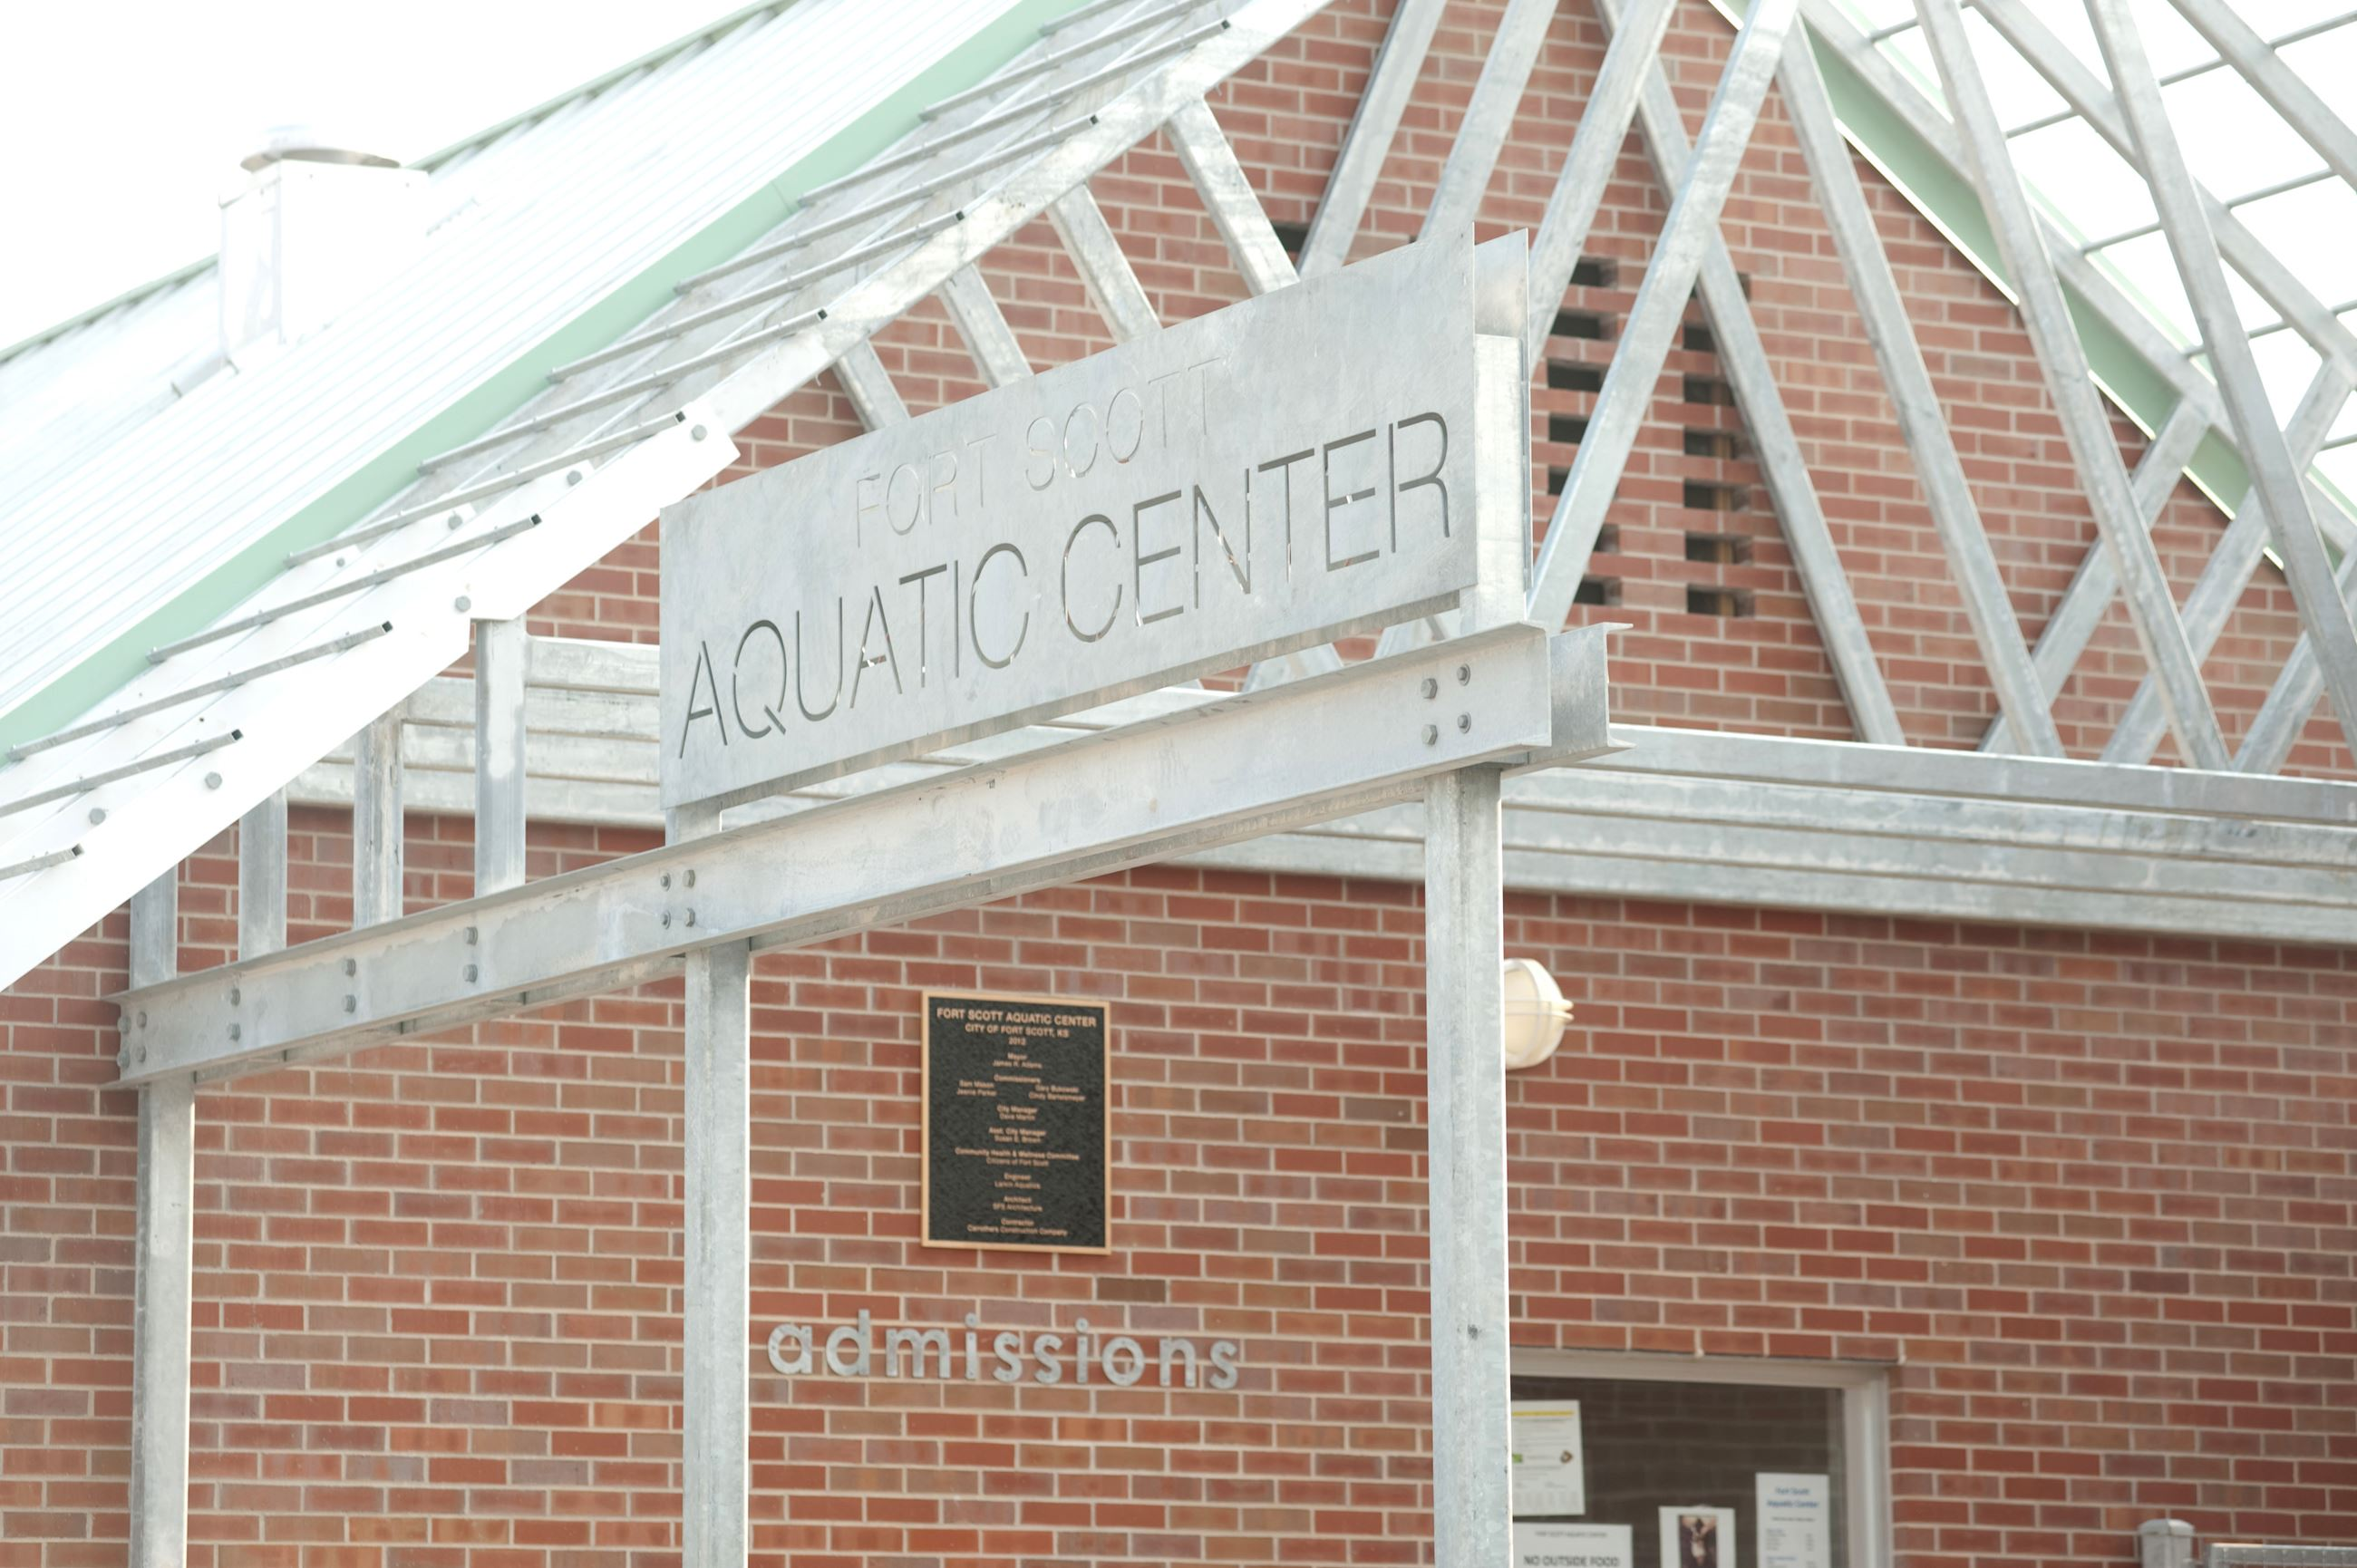 Fort Scott Aquatic Center Sign